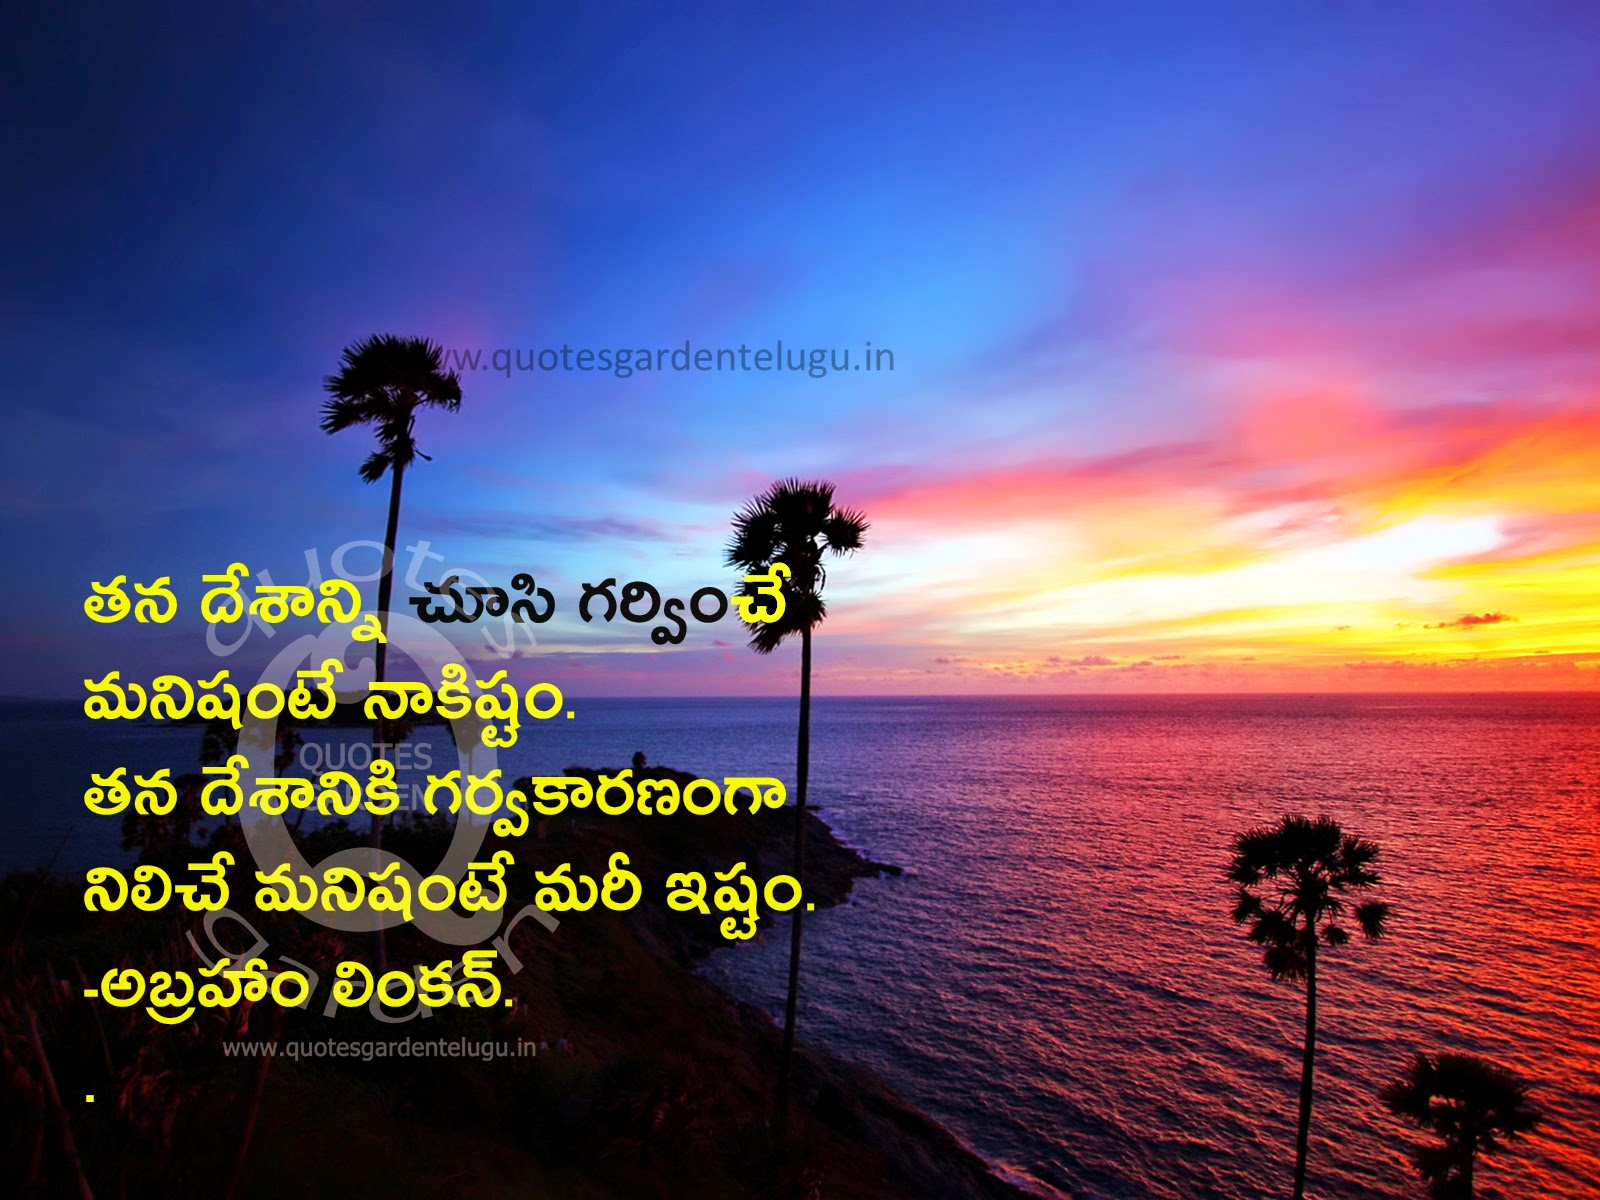 Awesome best Telugu Nice inspiational hd images wallpapers with cool images - telugu inspiraitonal motivational life qutoes